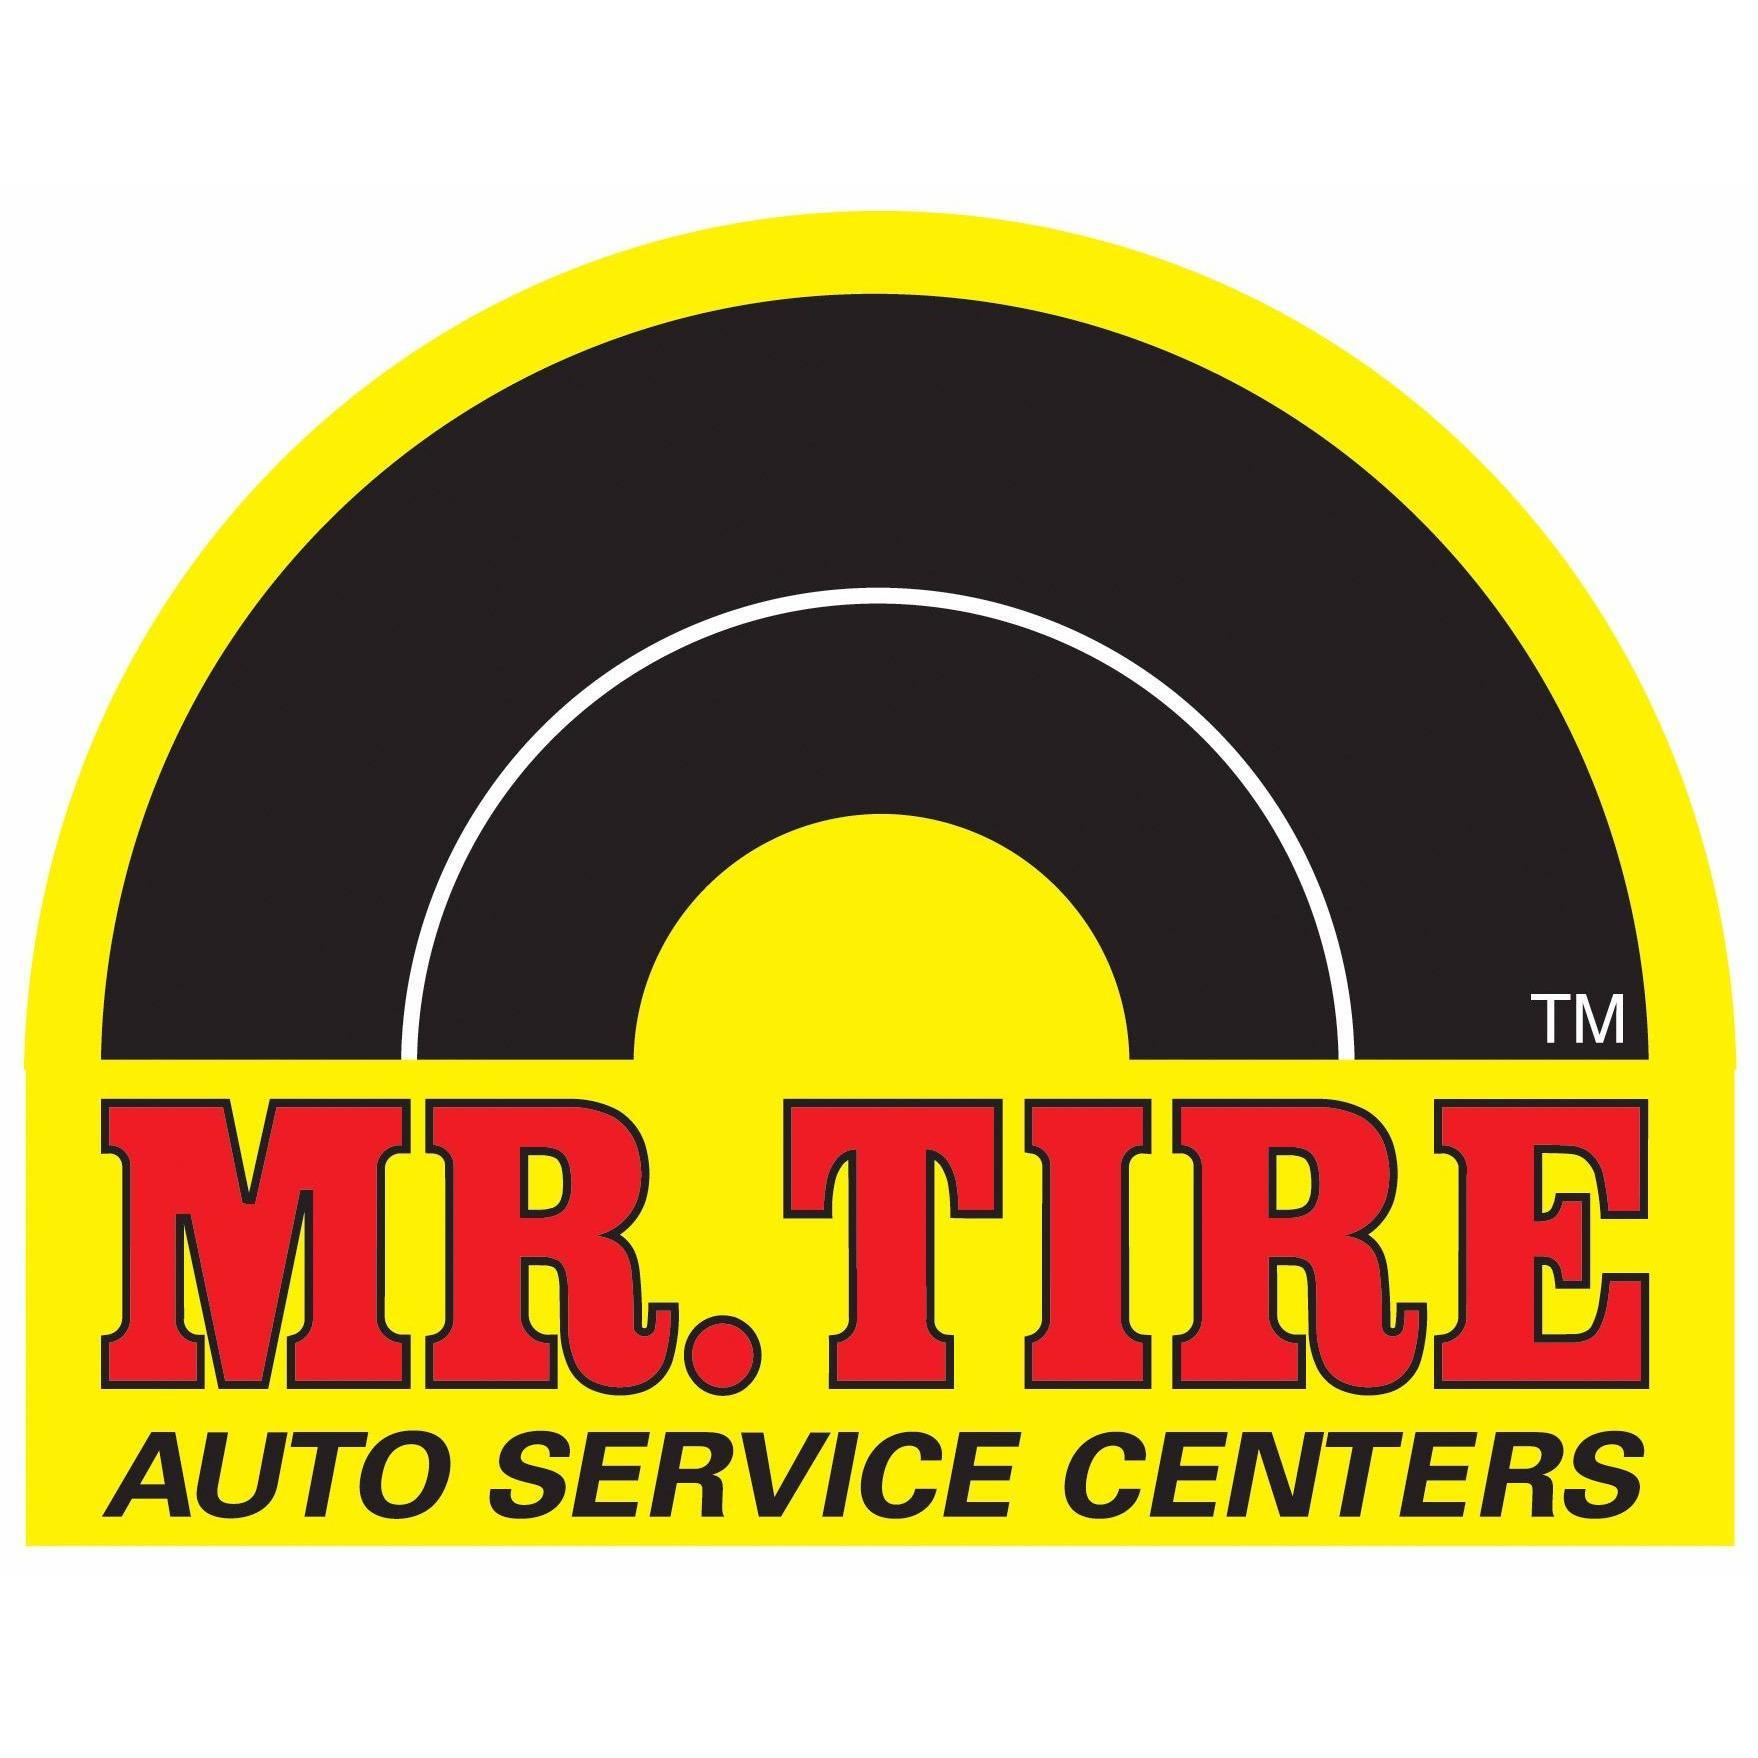 Mr Tire Auto Service Centers - Wooster, OH - Tires & Wheel Alignment